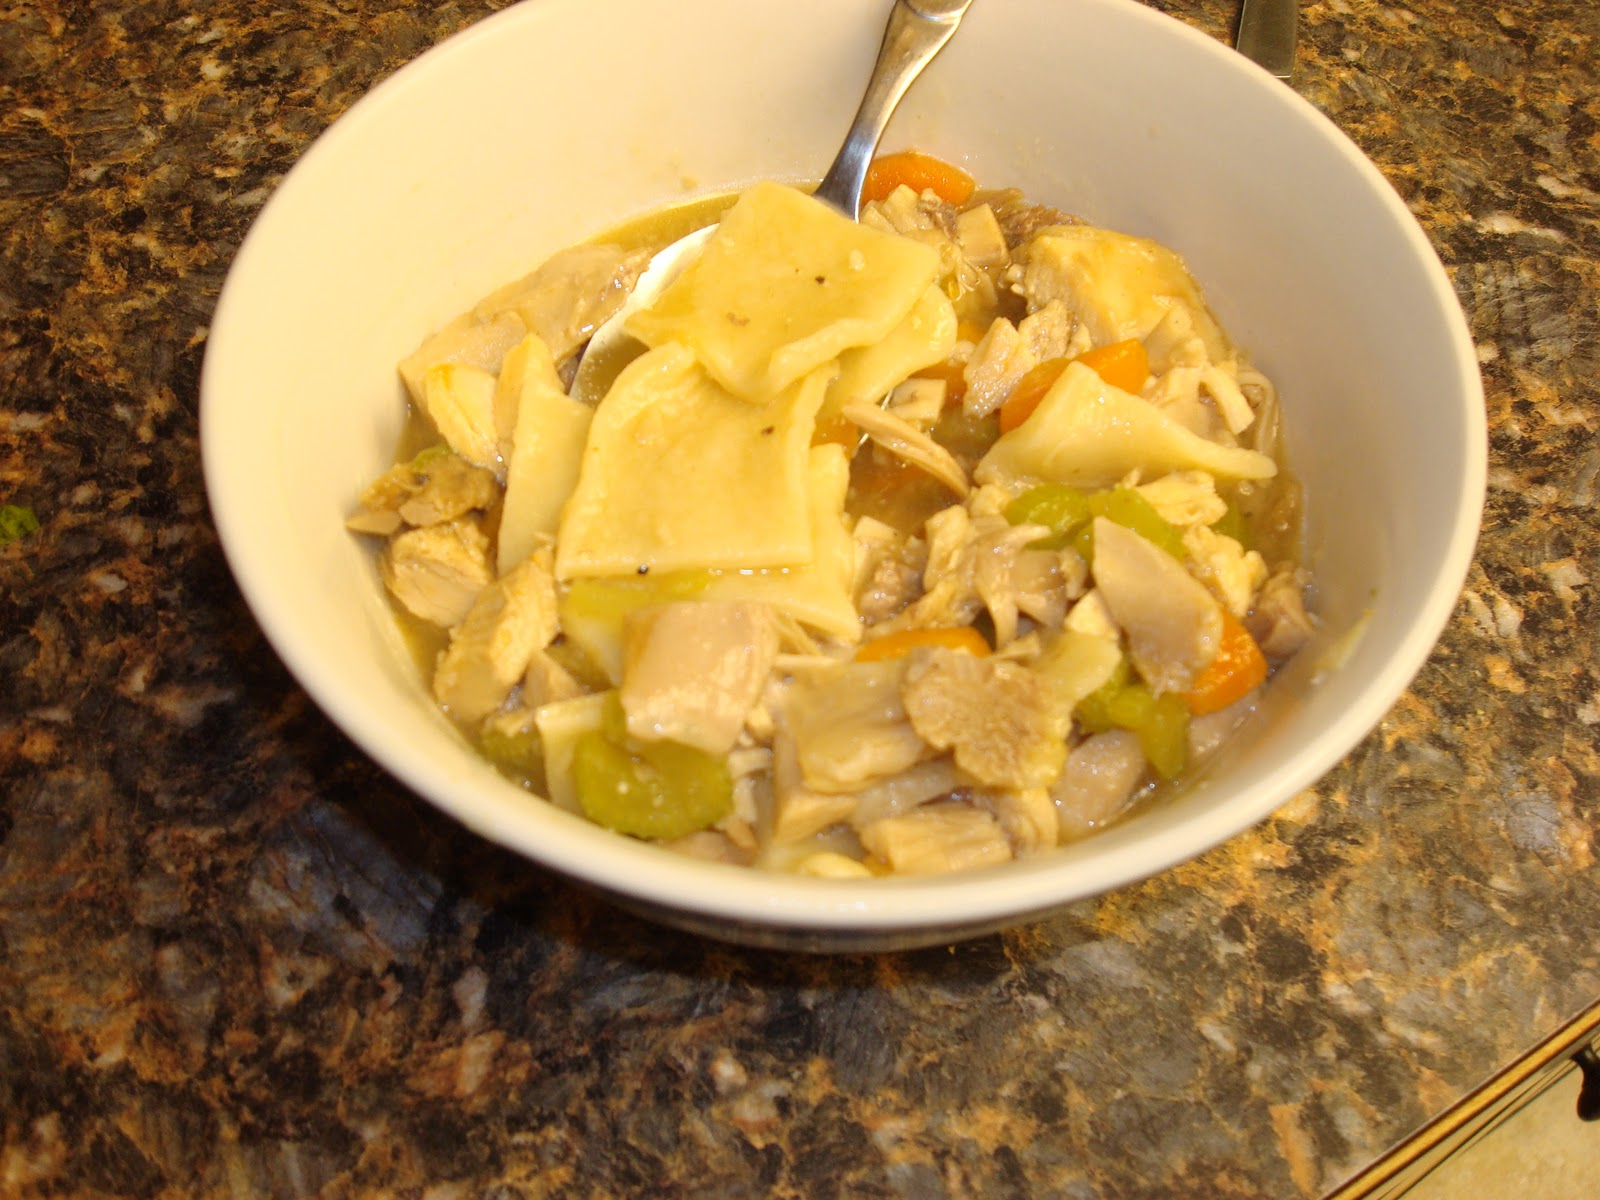 Make lemonade and more!: Leftover Turkey and Dumplings